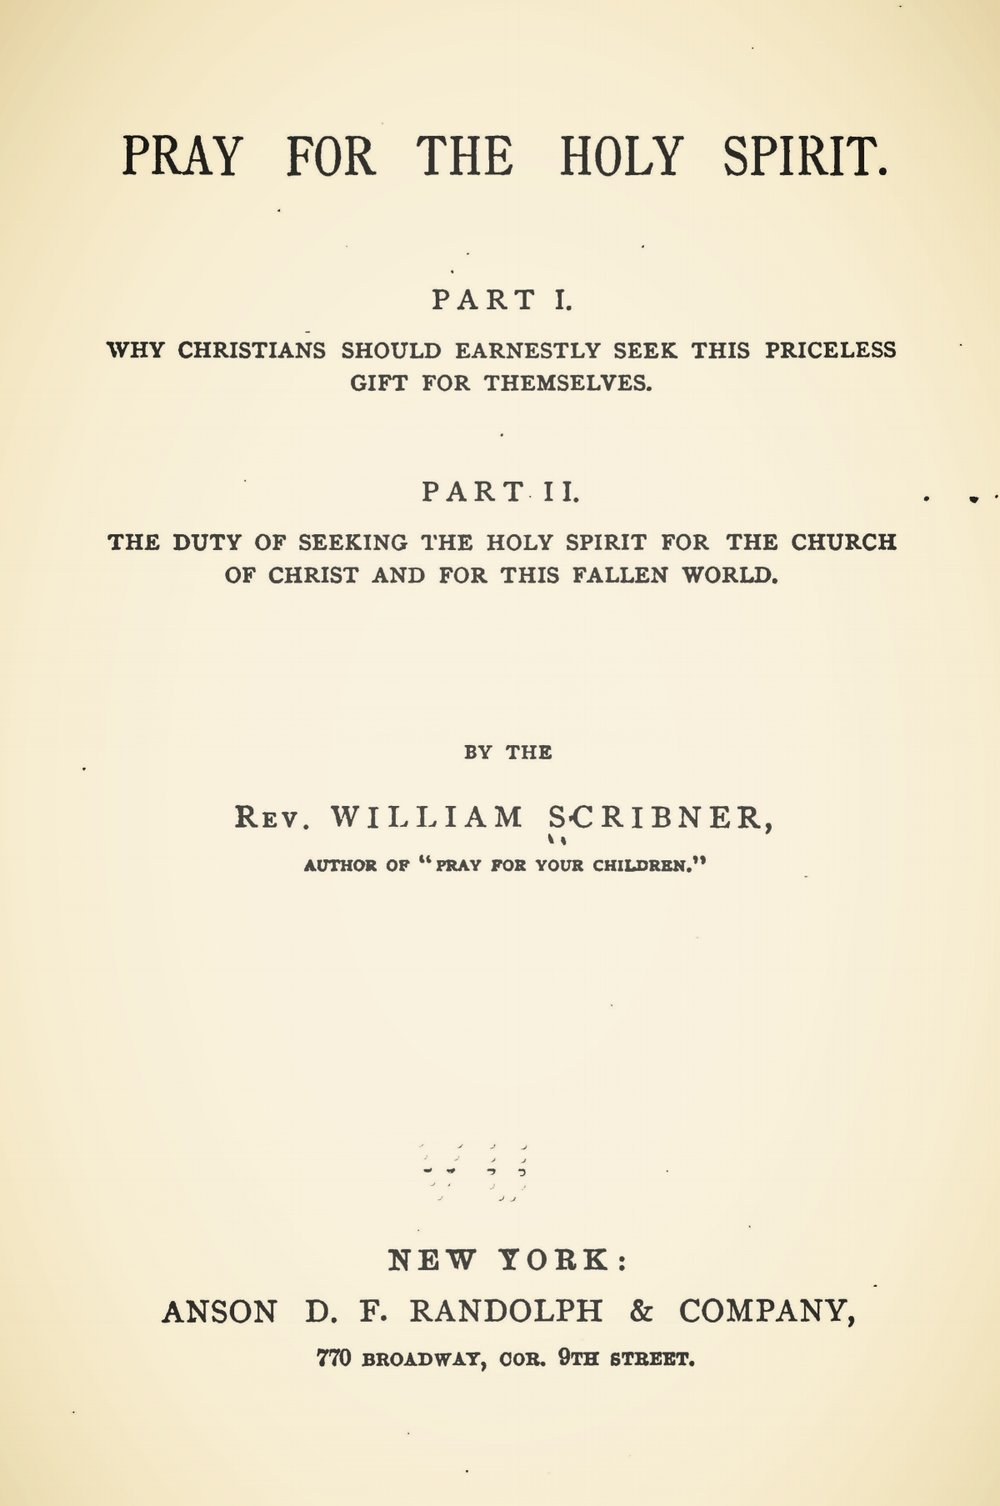 Scribner, William, Pray For the Holy Spirit Title Page.jpg